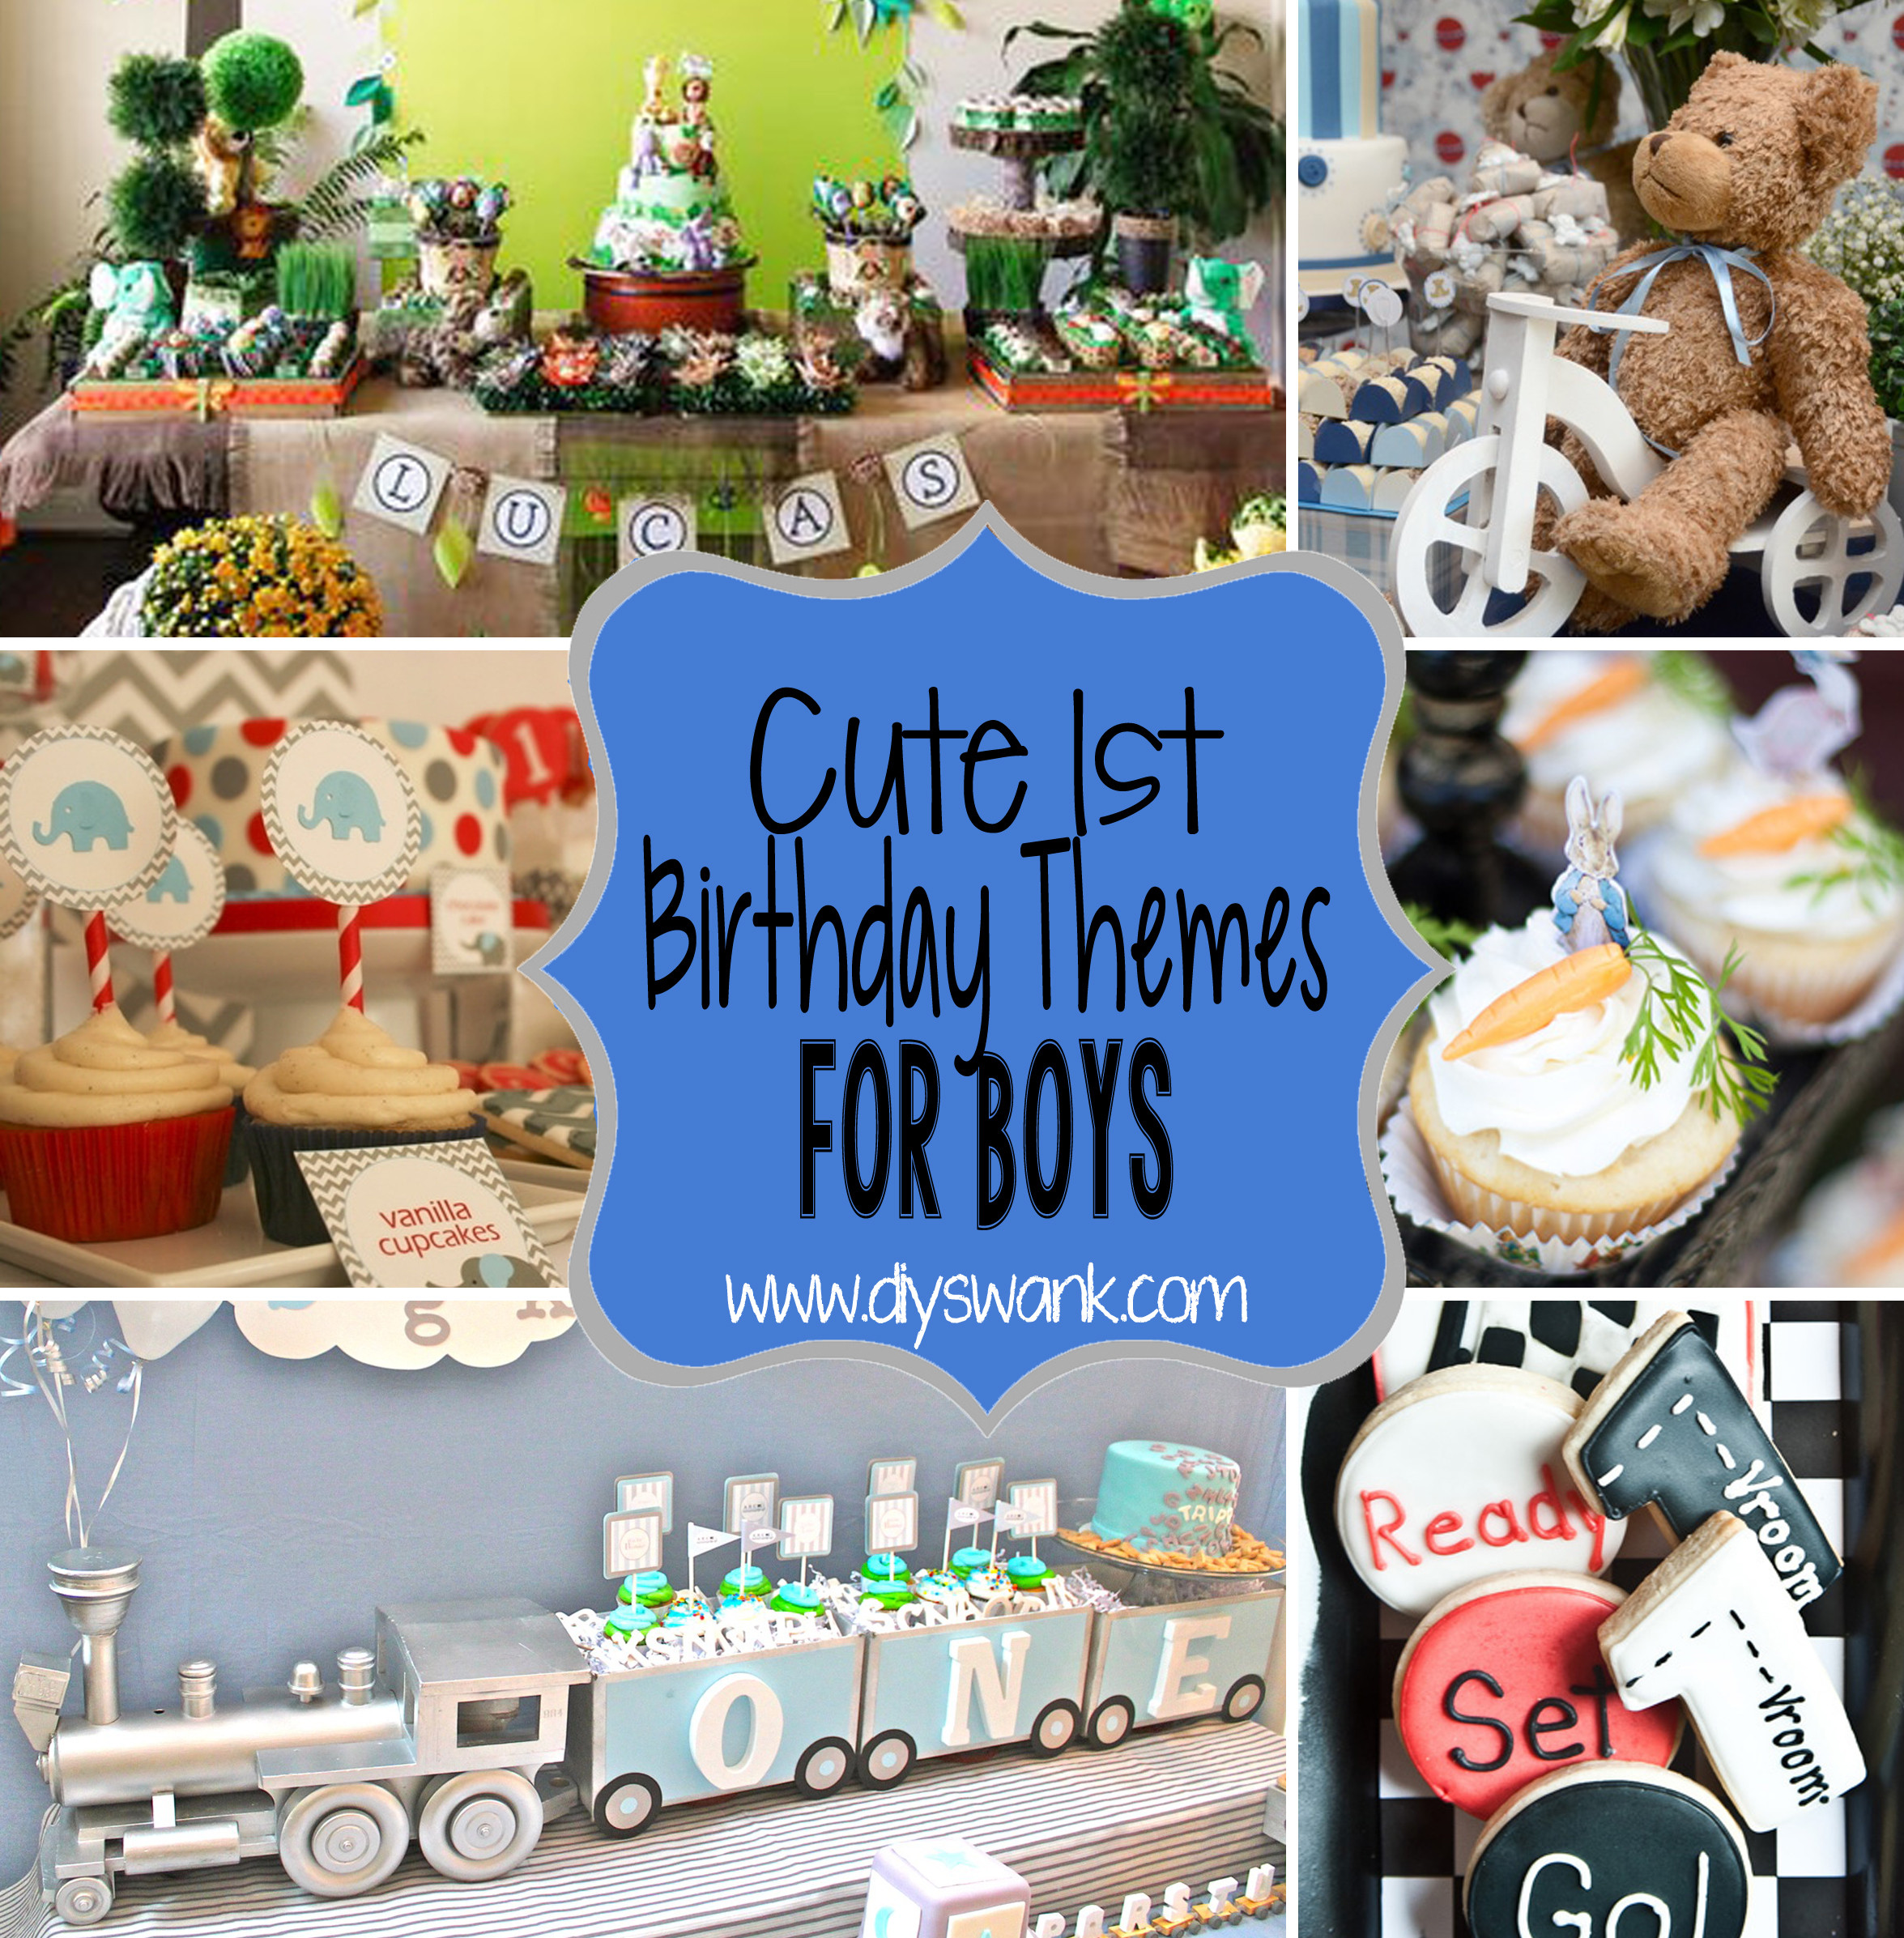 Best ideas about 1st Birthday Ideas For Boys . Save or Pin Cute Boy 1st Birthday Party Themes Now.